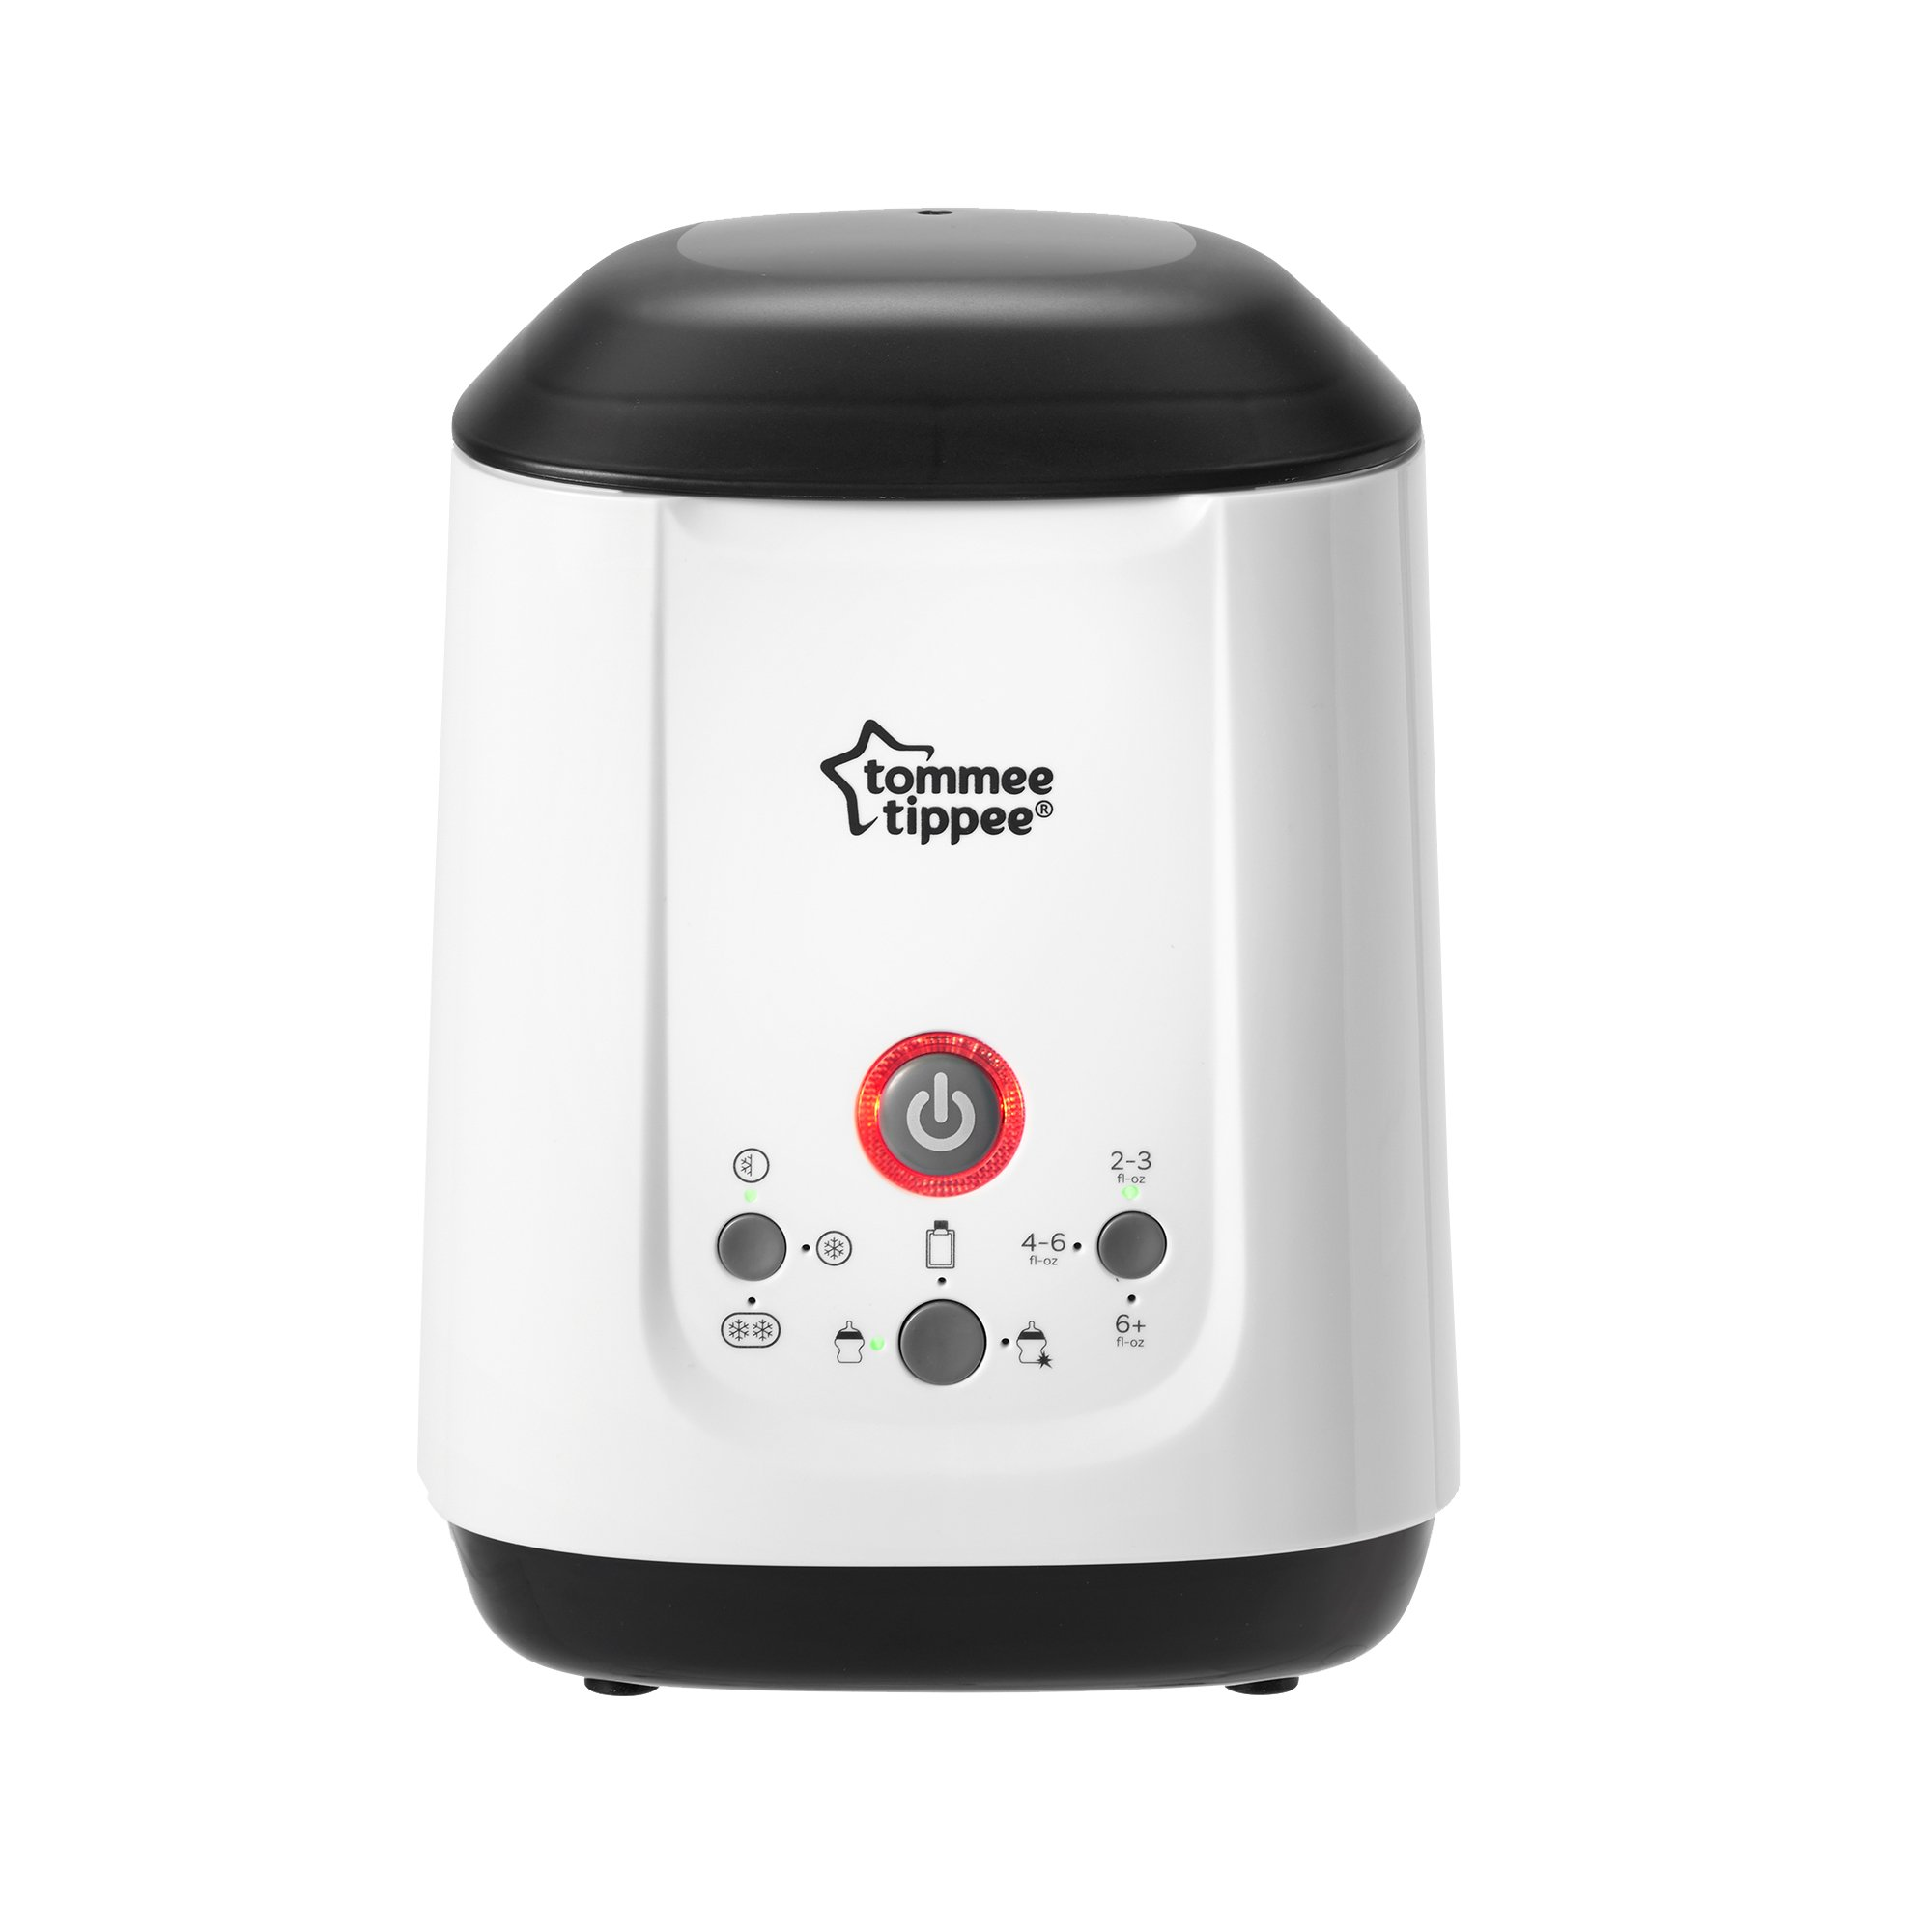 Tommee Tippee Express and Go Bottle and Pouch Warmer